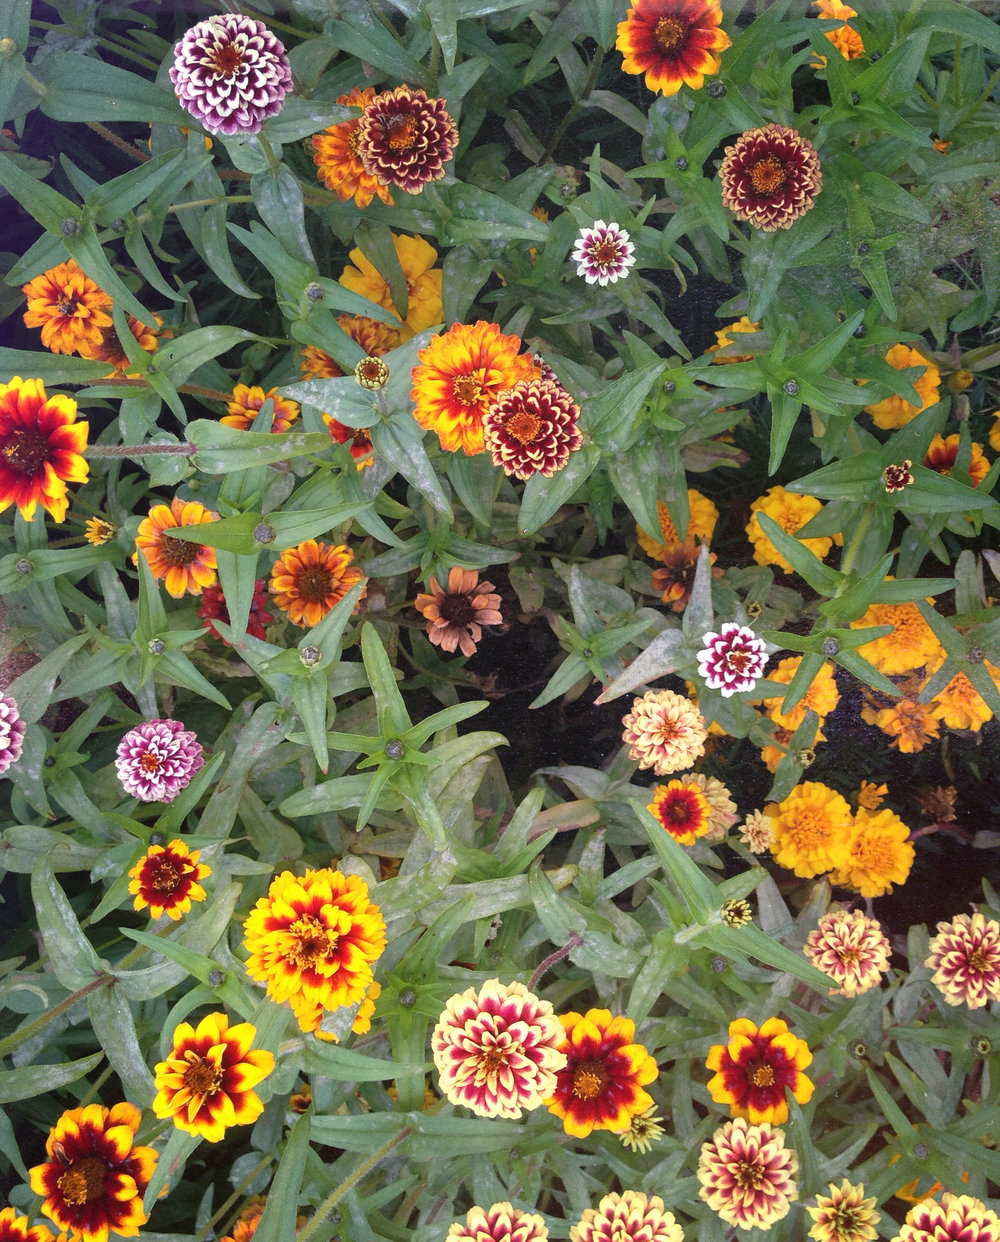 Jazzy Mix Zinnias:  Wide range of interesting flower designs, like little floral spirographs. Don't look too zinnia-y.   Next year: Yes    ,   but combined with something other than marigolds to showcase the color range. Maybe something blue.